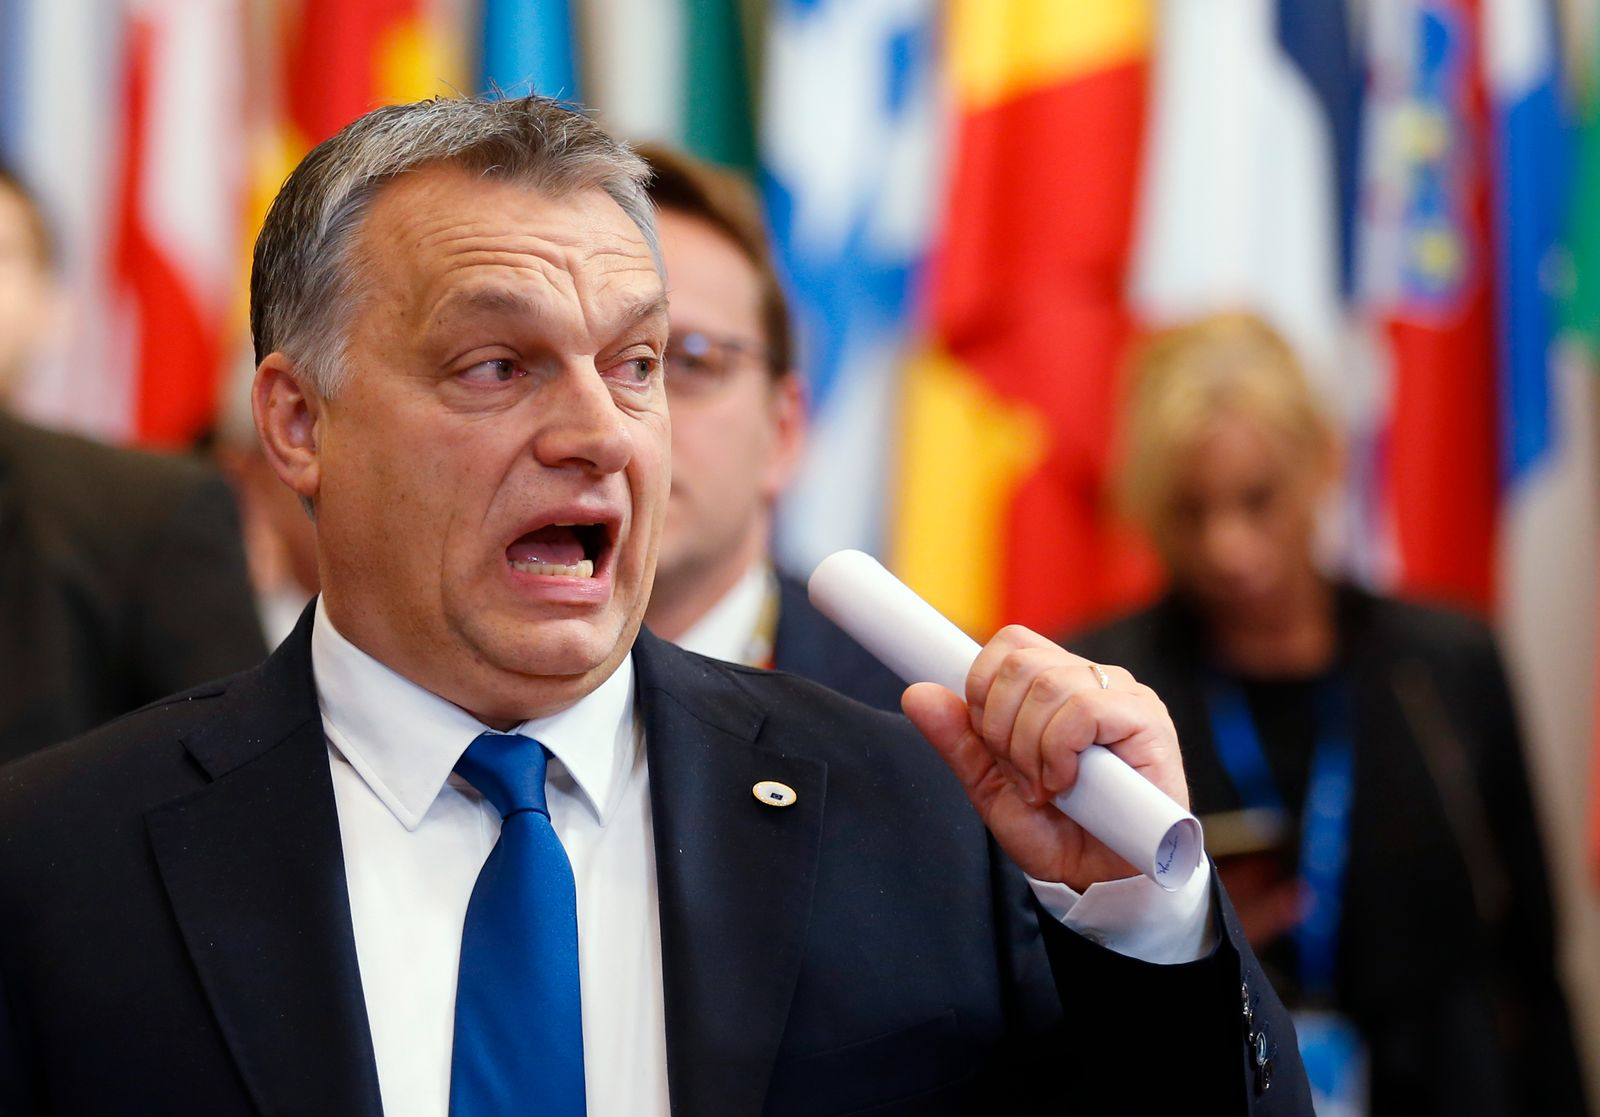 Hungary's PM Orban reacts as he leaves a EU leaders summit in Brussels